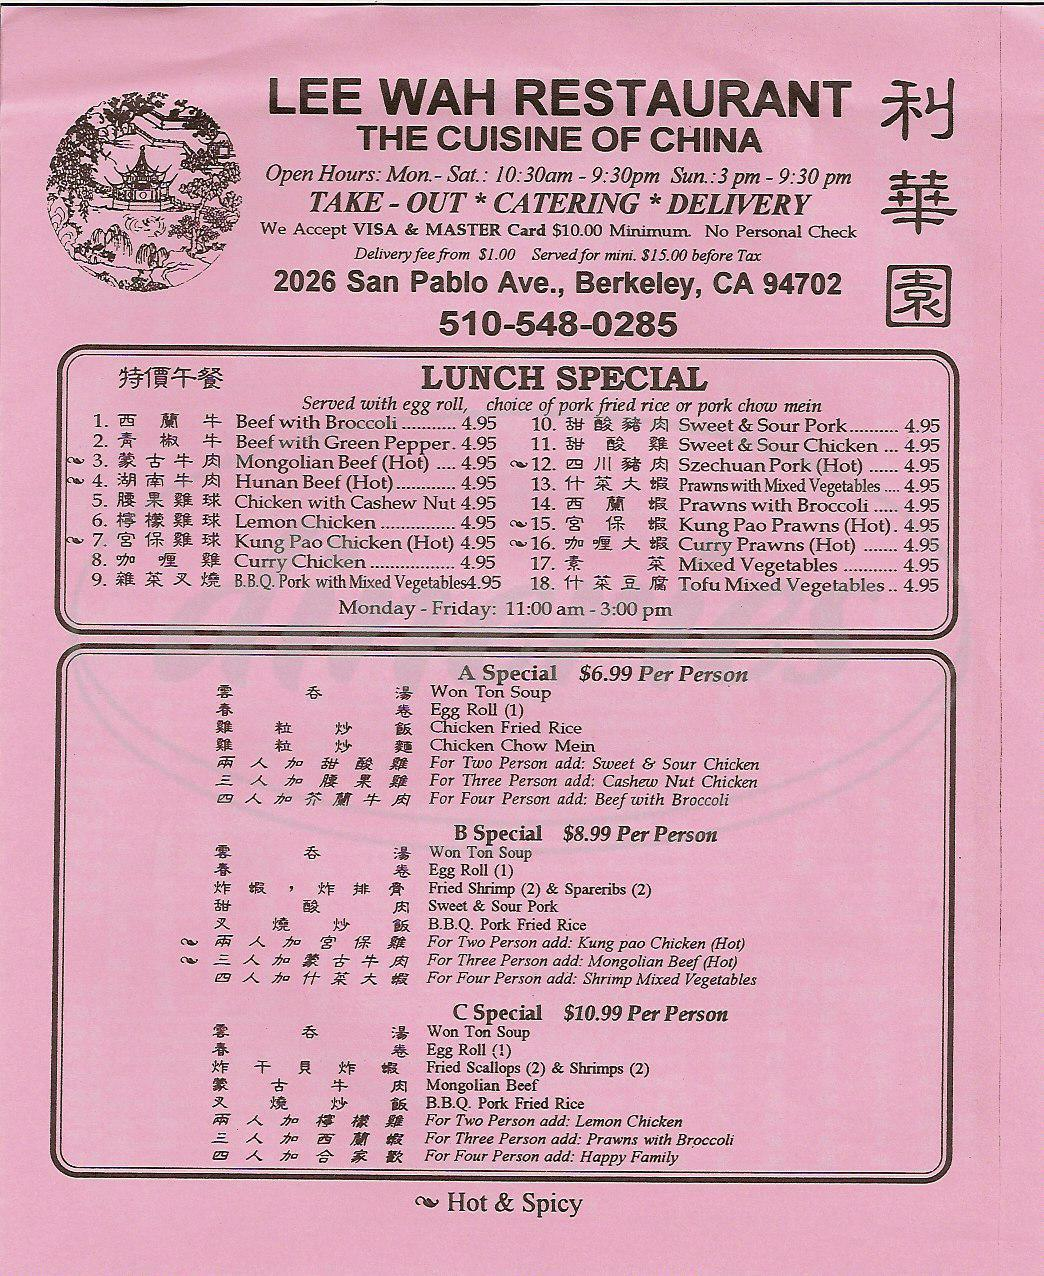 menu for Lee Wah